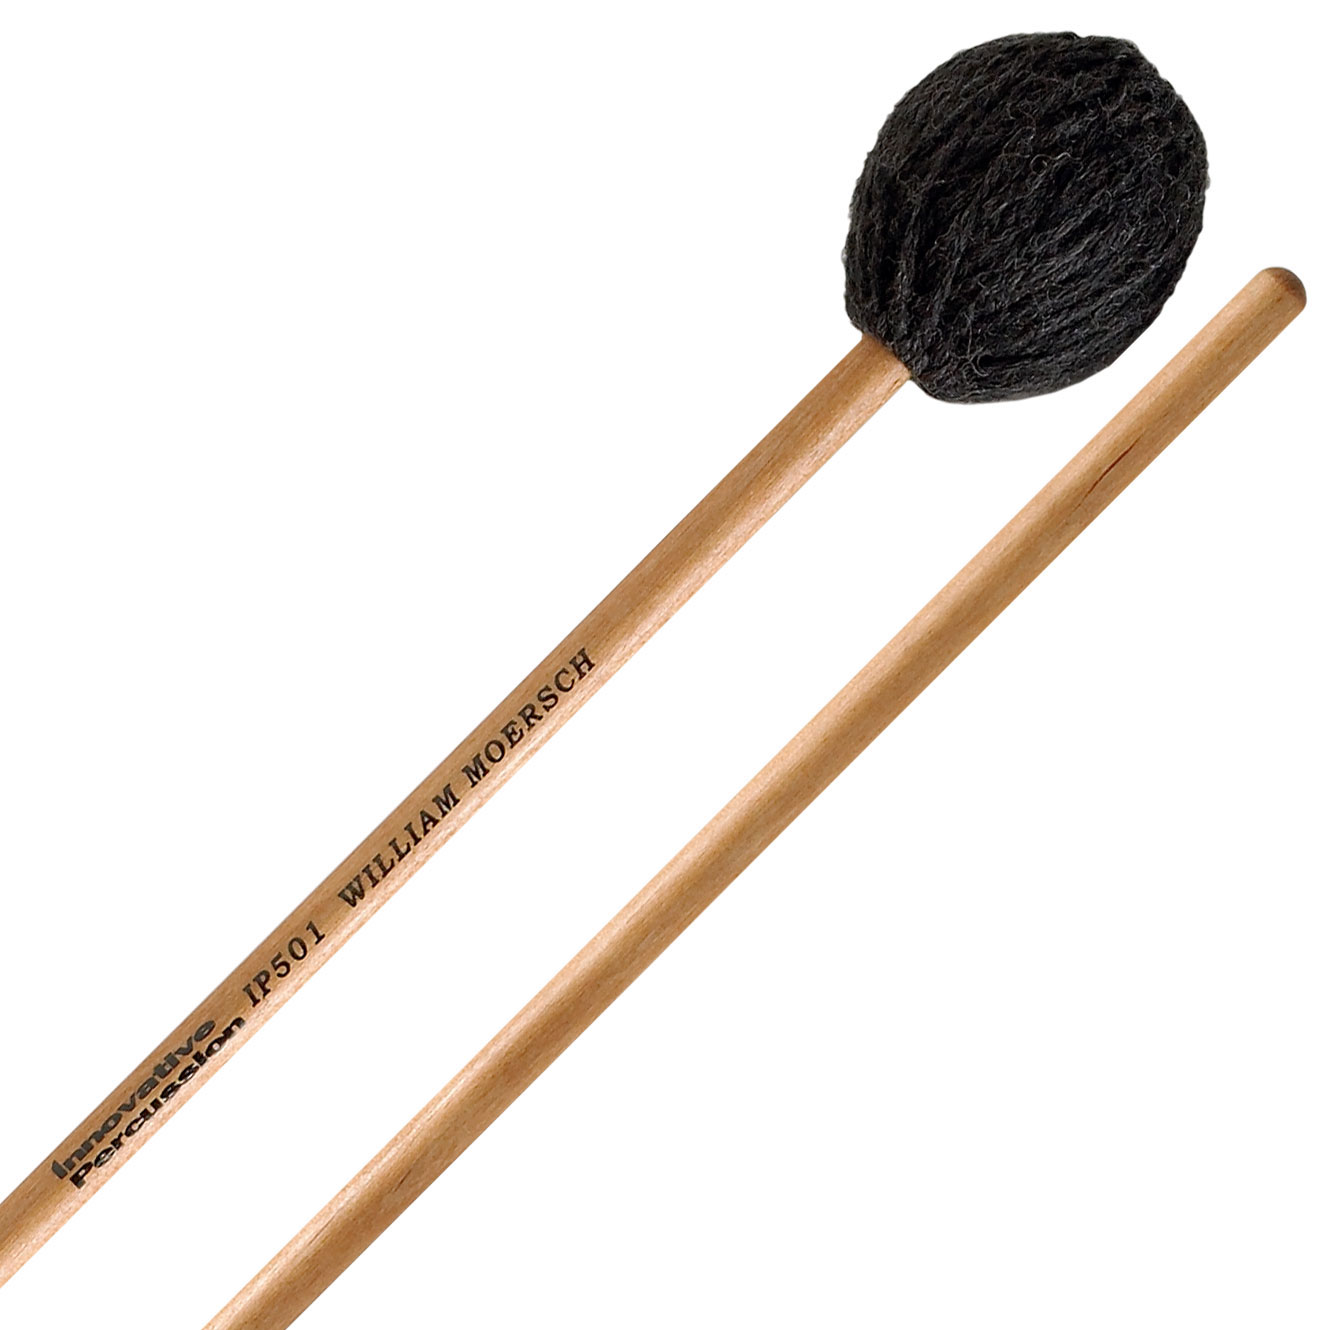 Innovative Percussion William Moersch Signature Soft Marimba Mallets